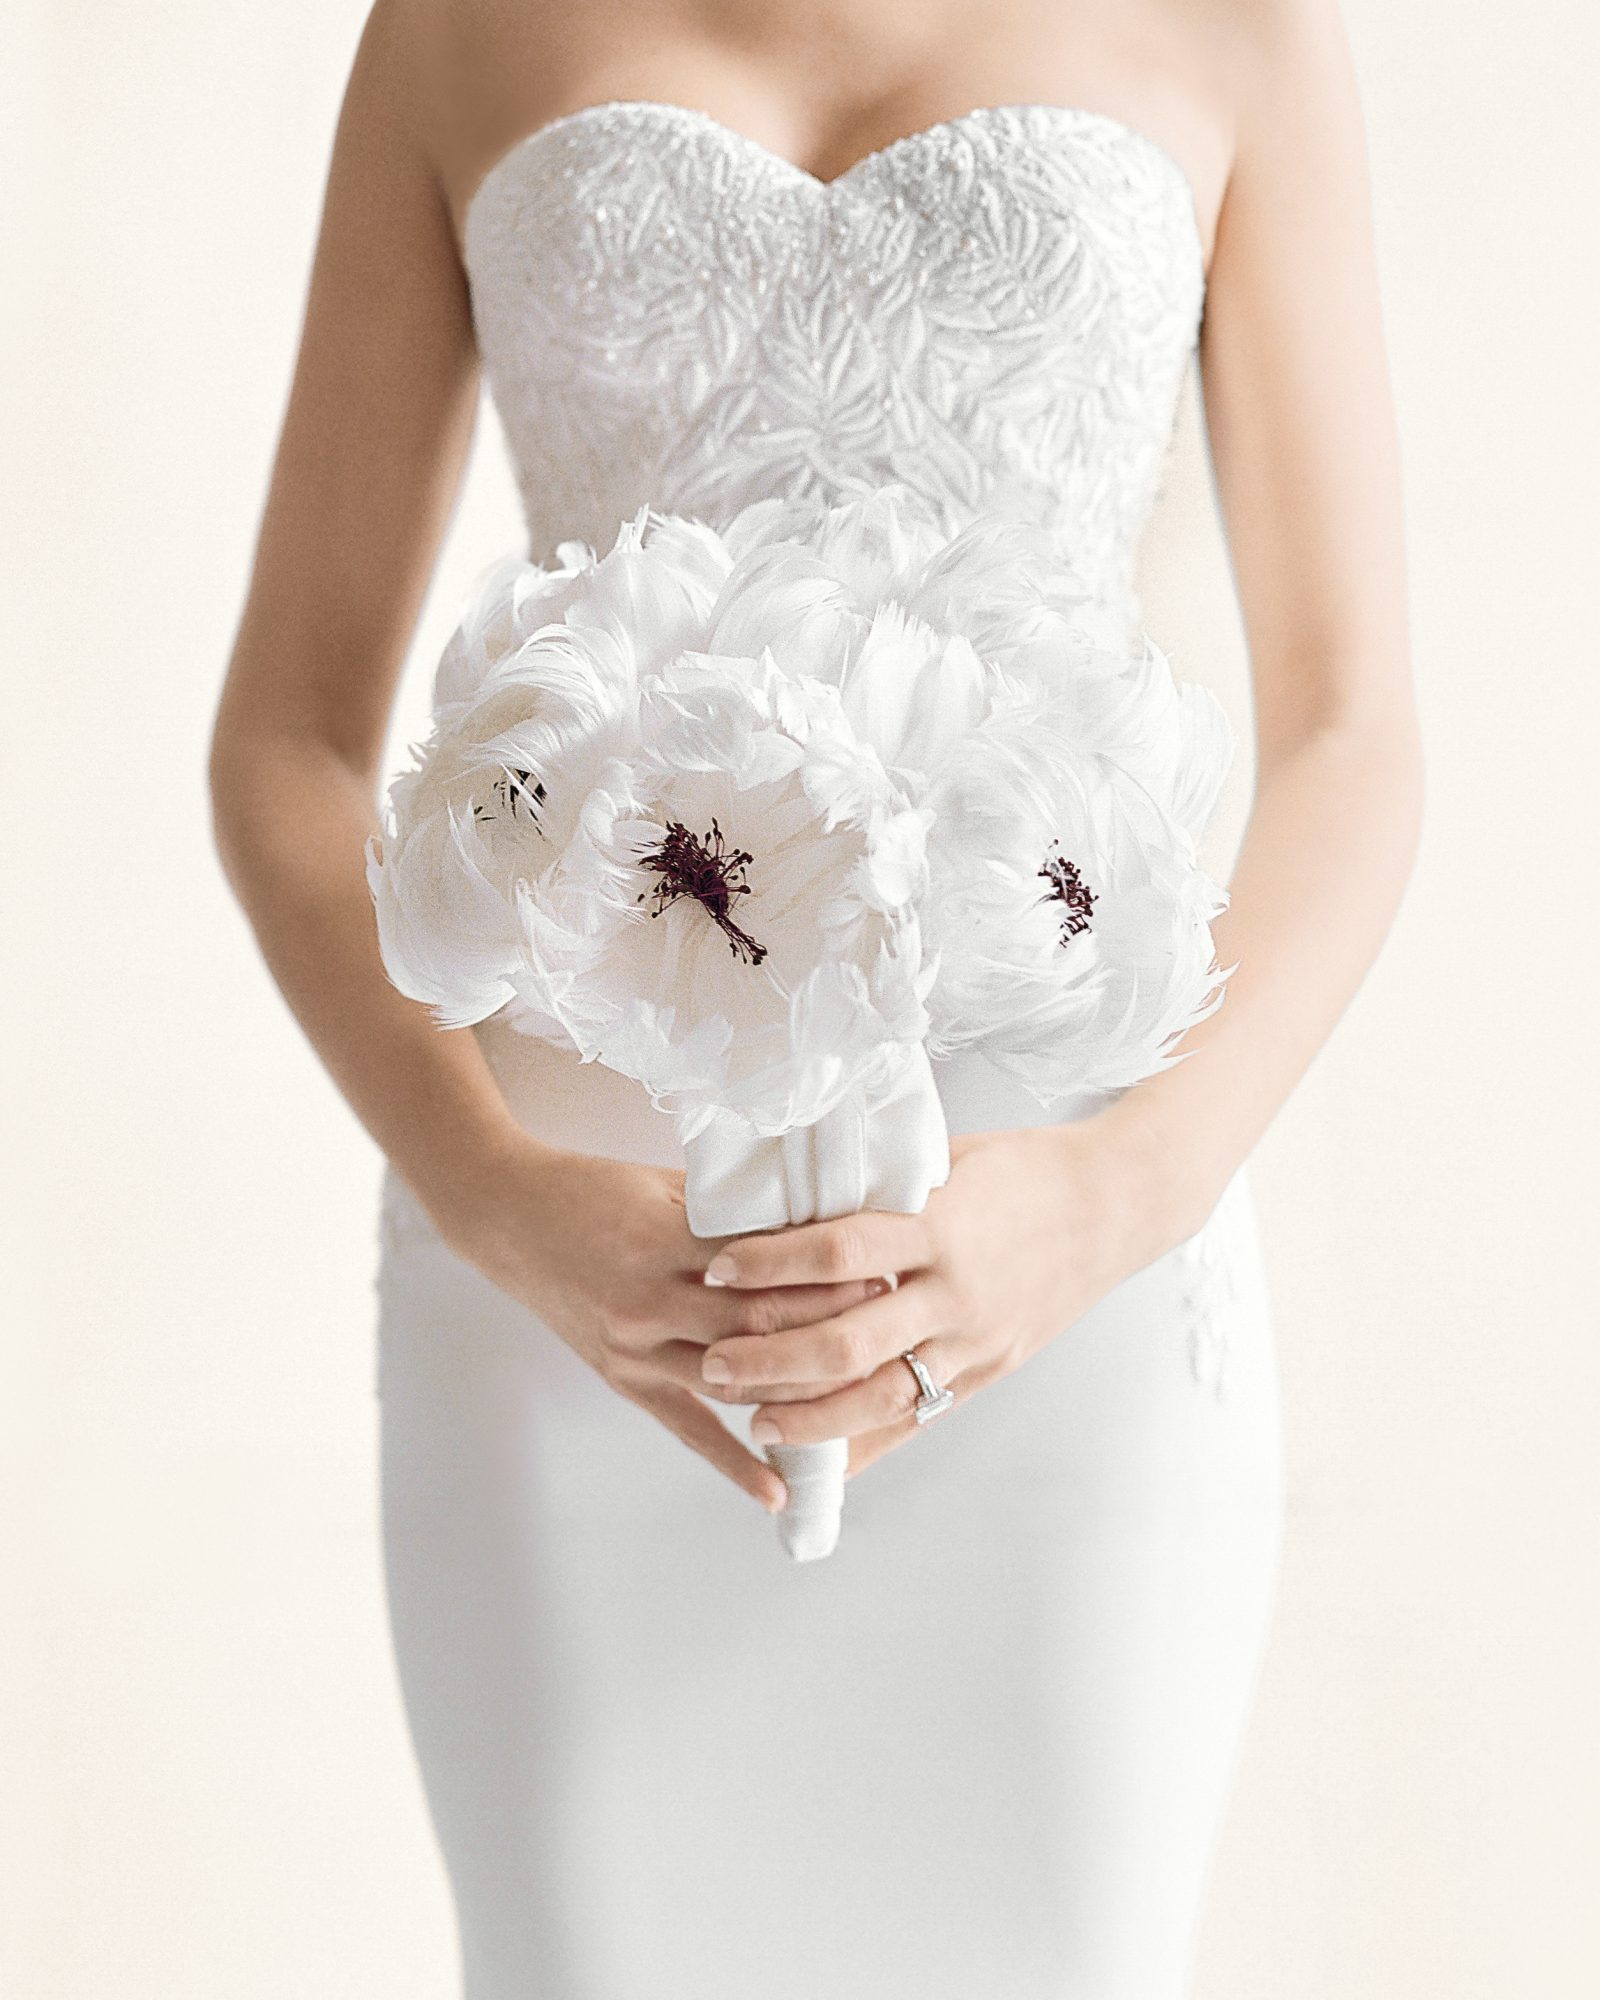 rw-jojo-eric-wedding-dress-bouquet-166-elizabeth-messina-ds111226.jpg